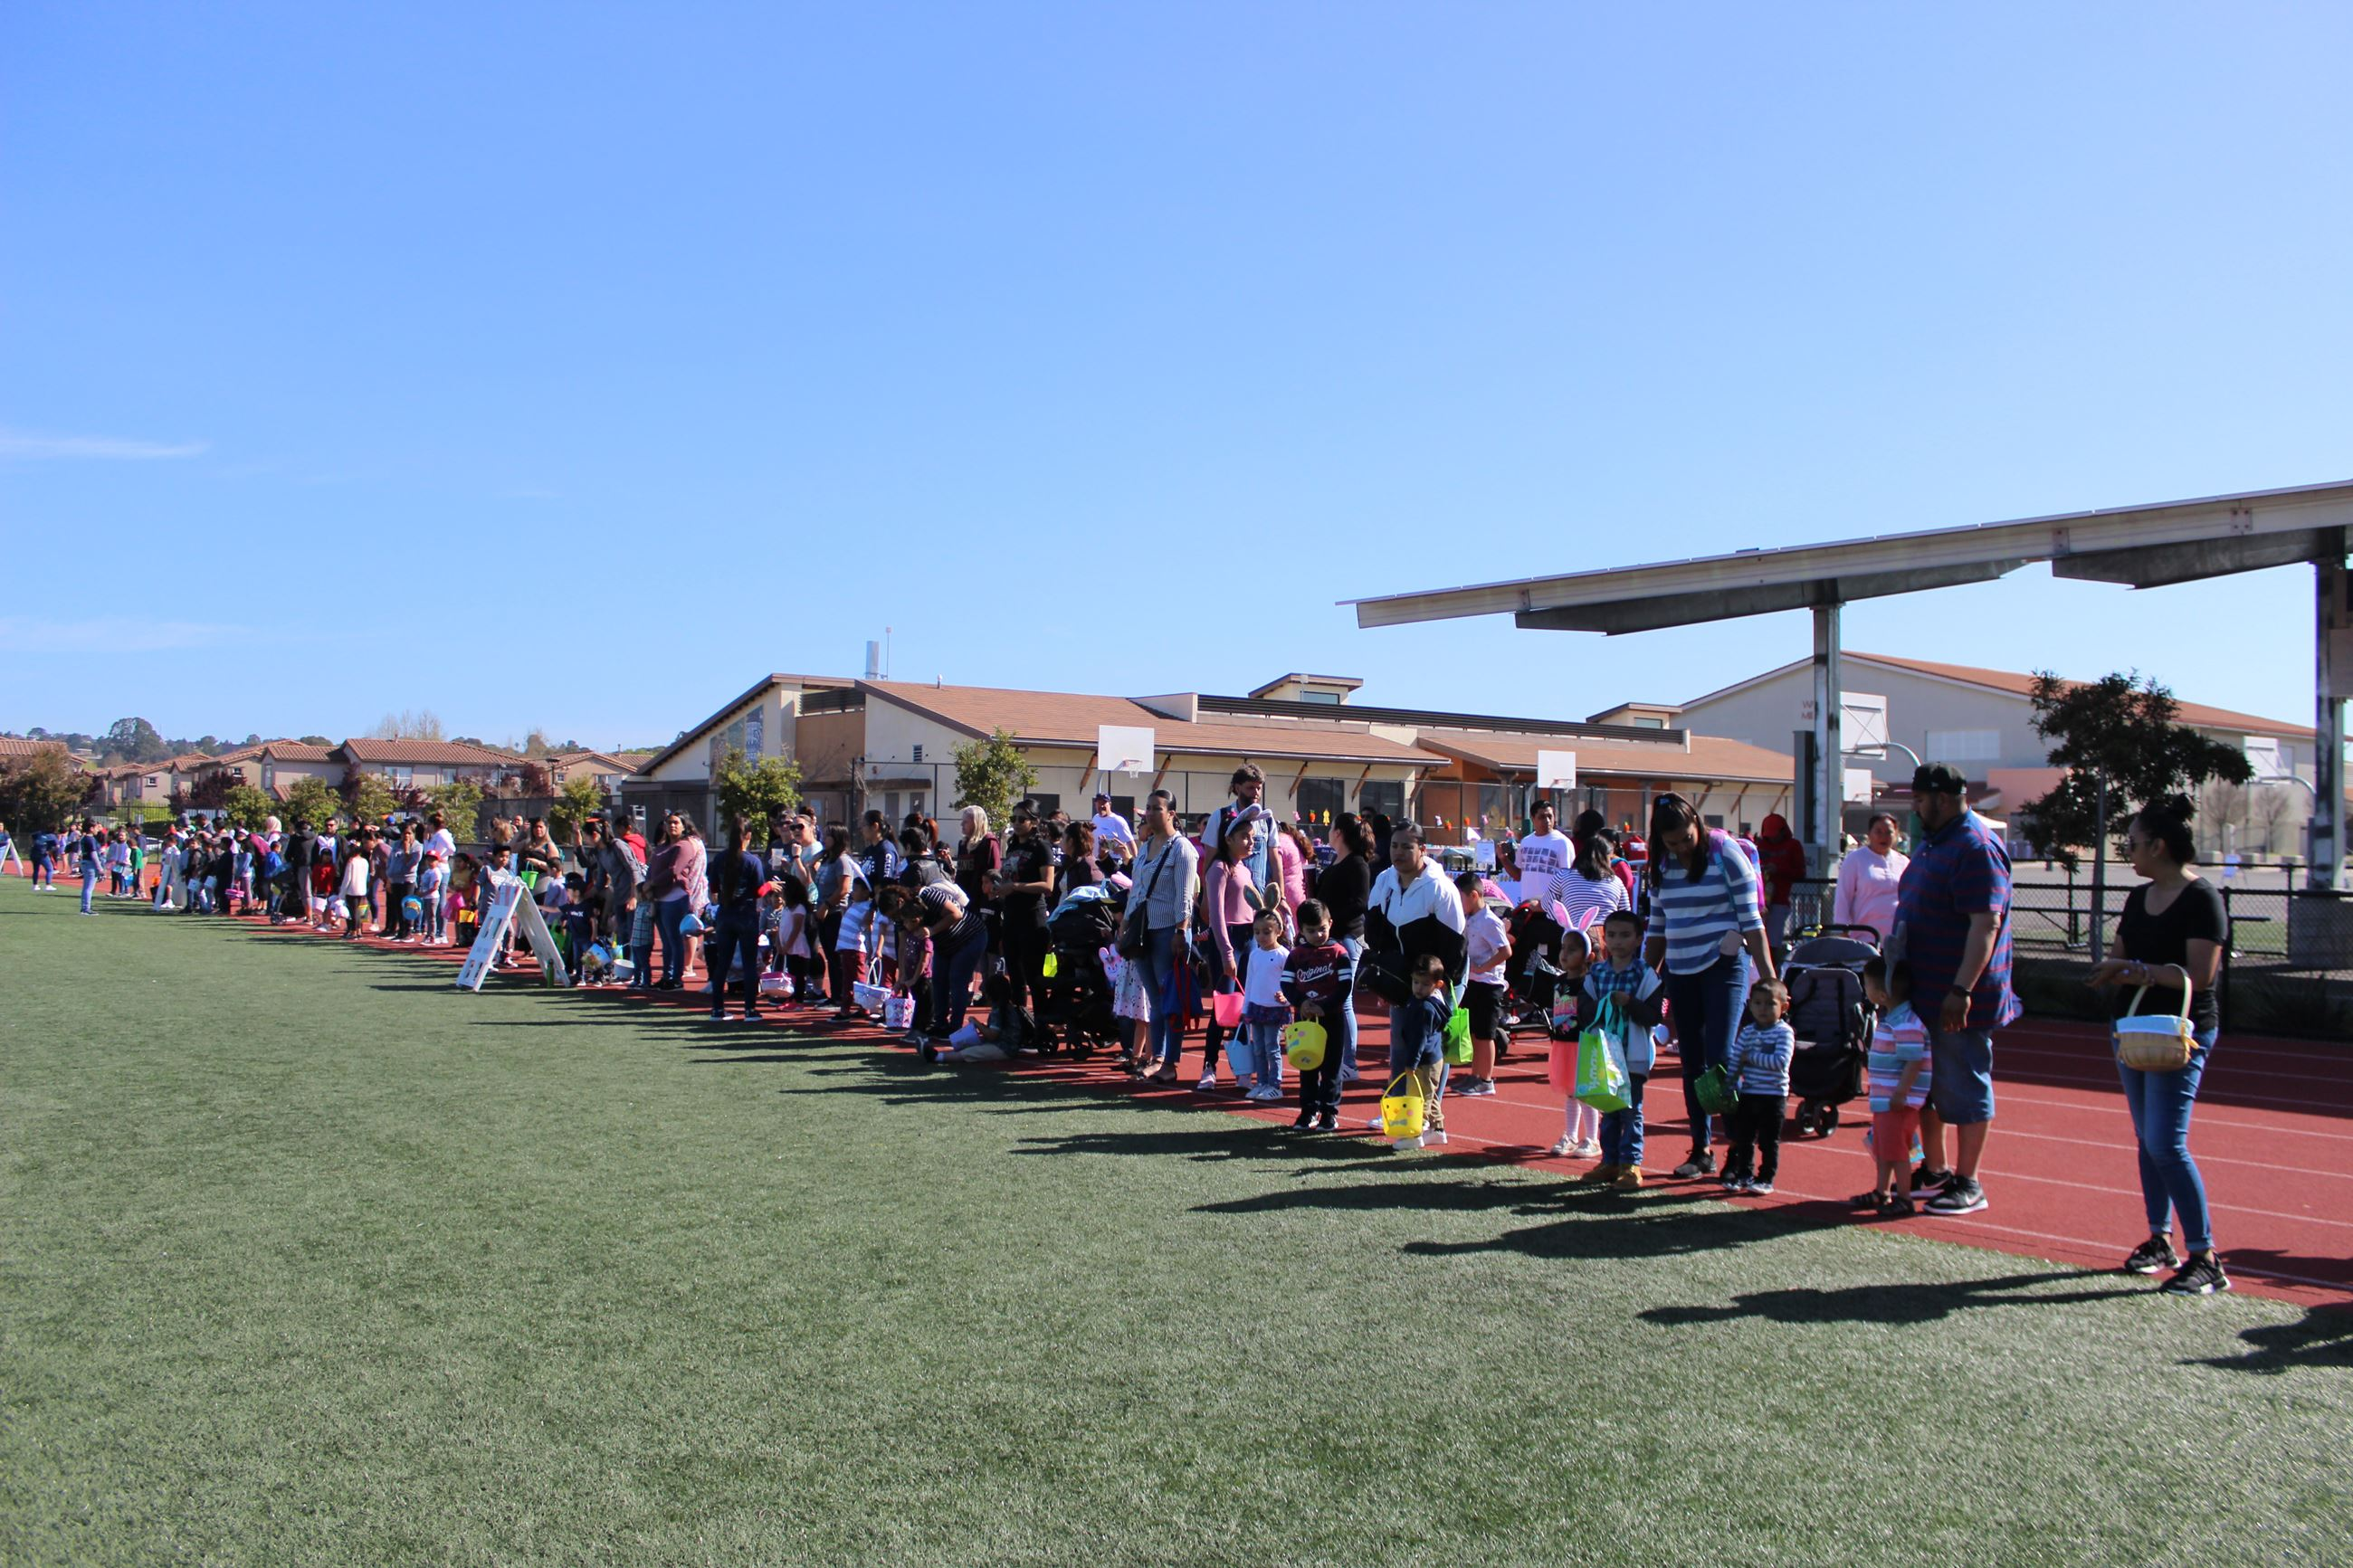 Participants waiting for Egg Hunt at Spring Eggstravaganza